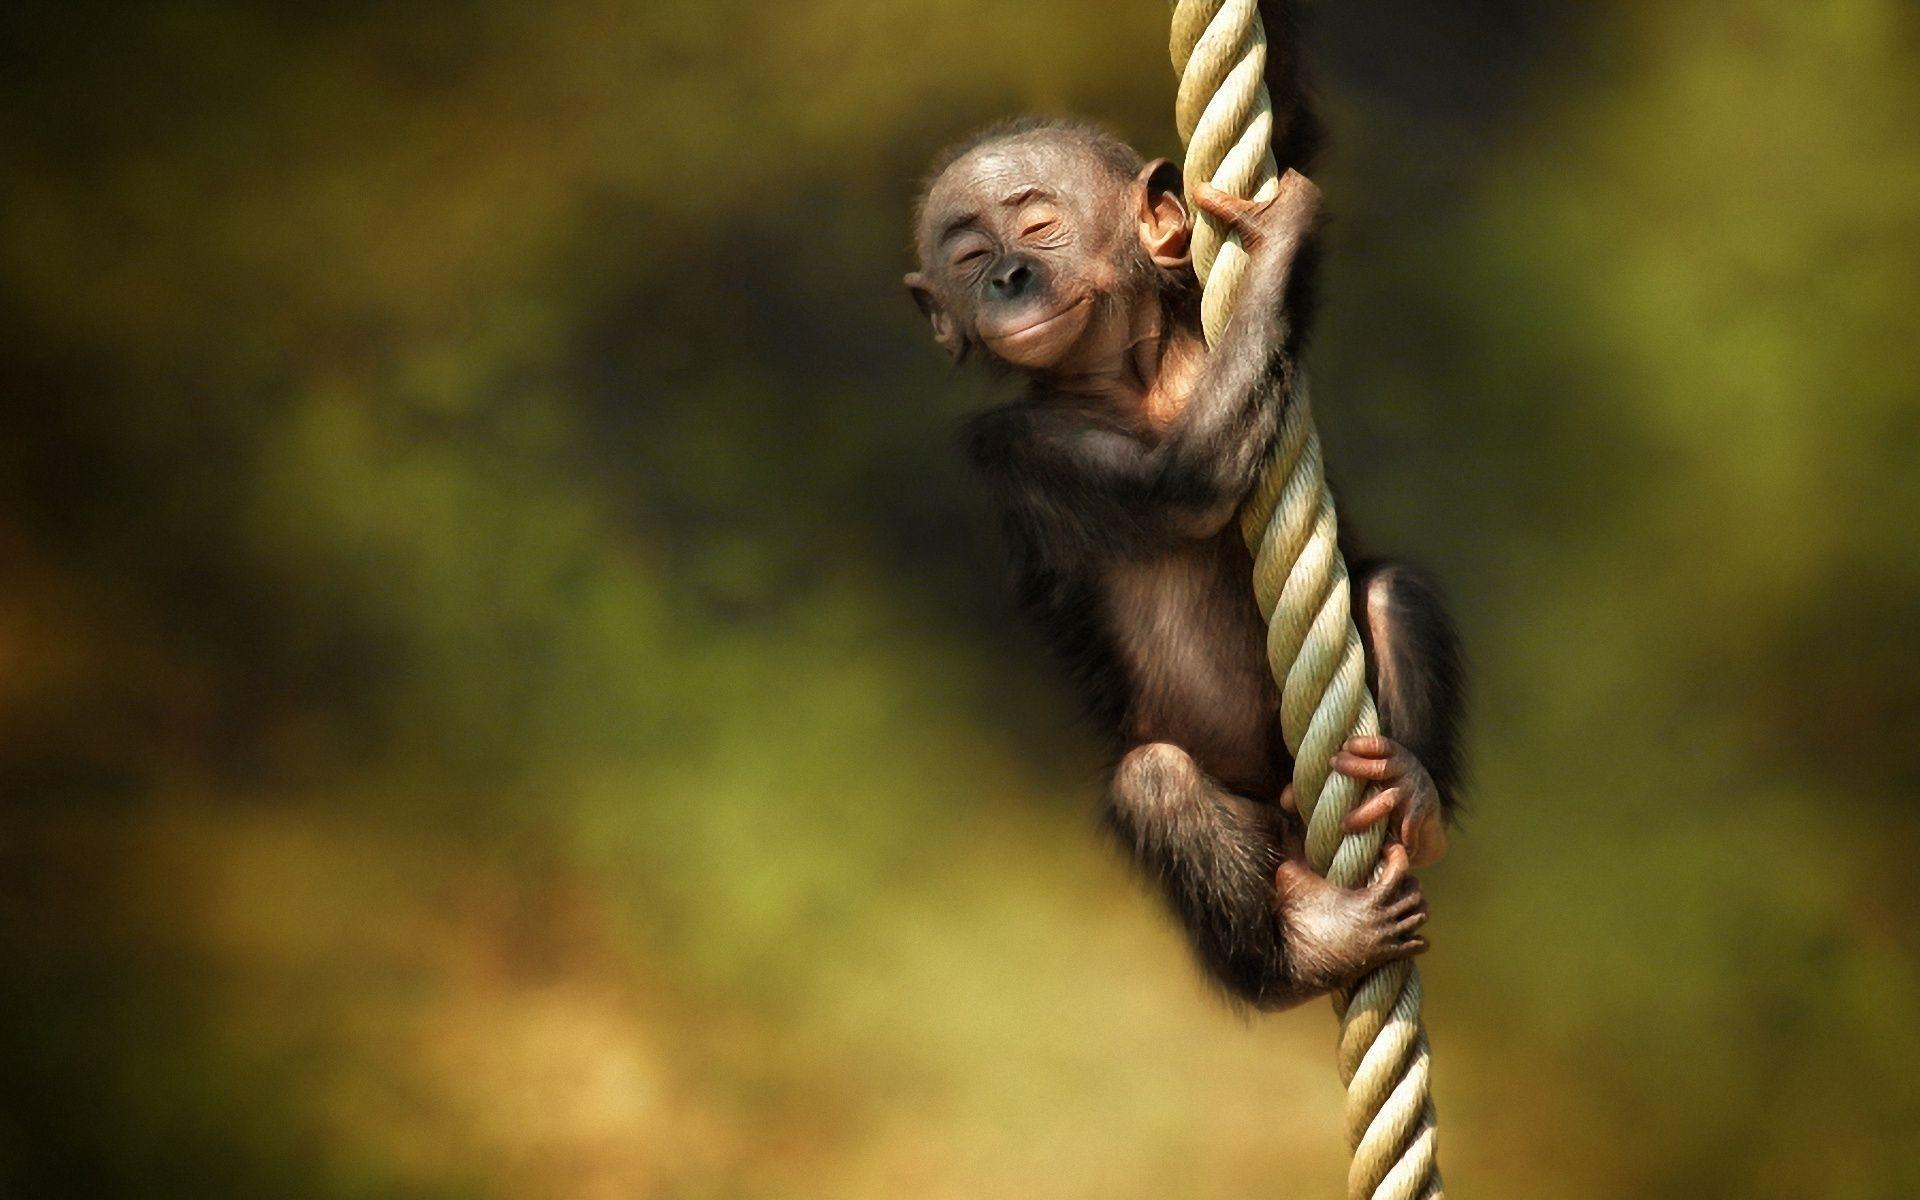 Monkey Desktop Wallpaper | Monkey Pictures | New Wallpapers